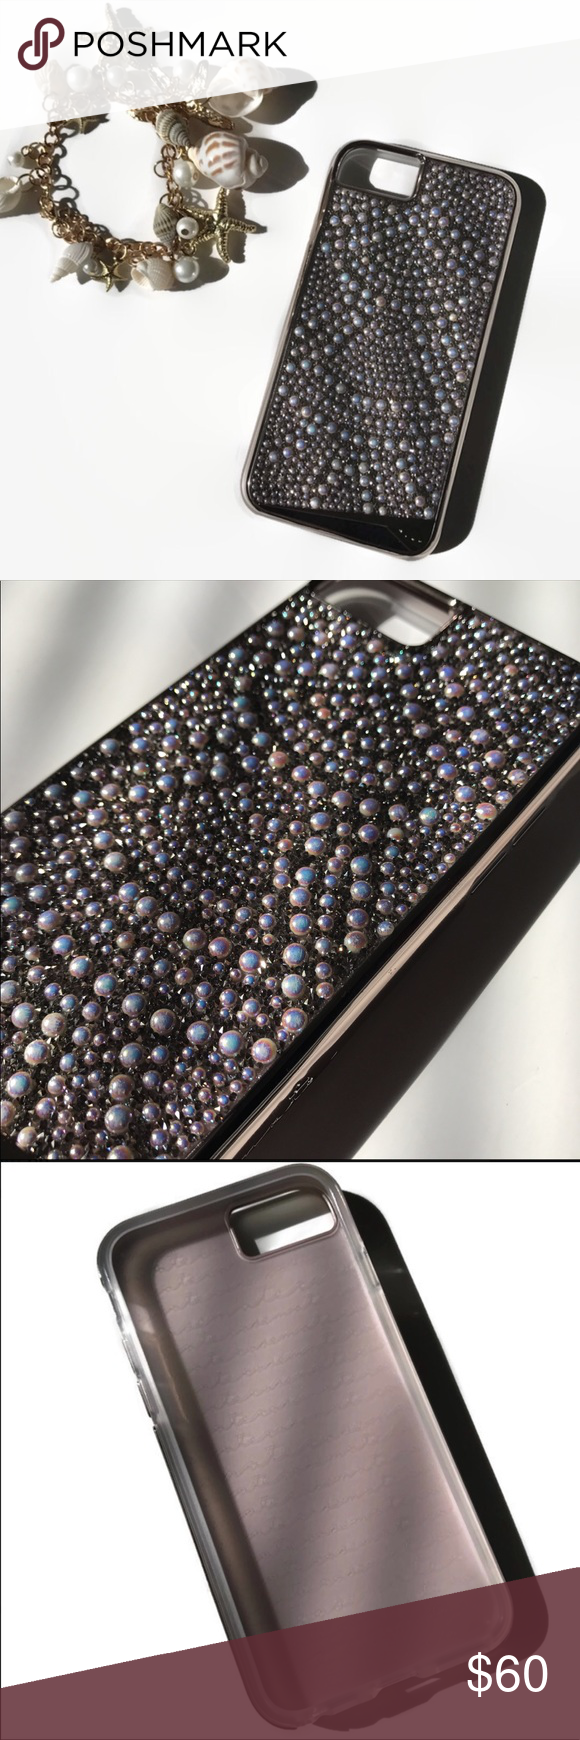 Brilliance Tough IPhone case This is an absolutely